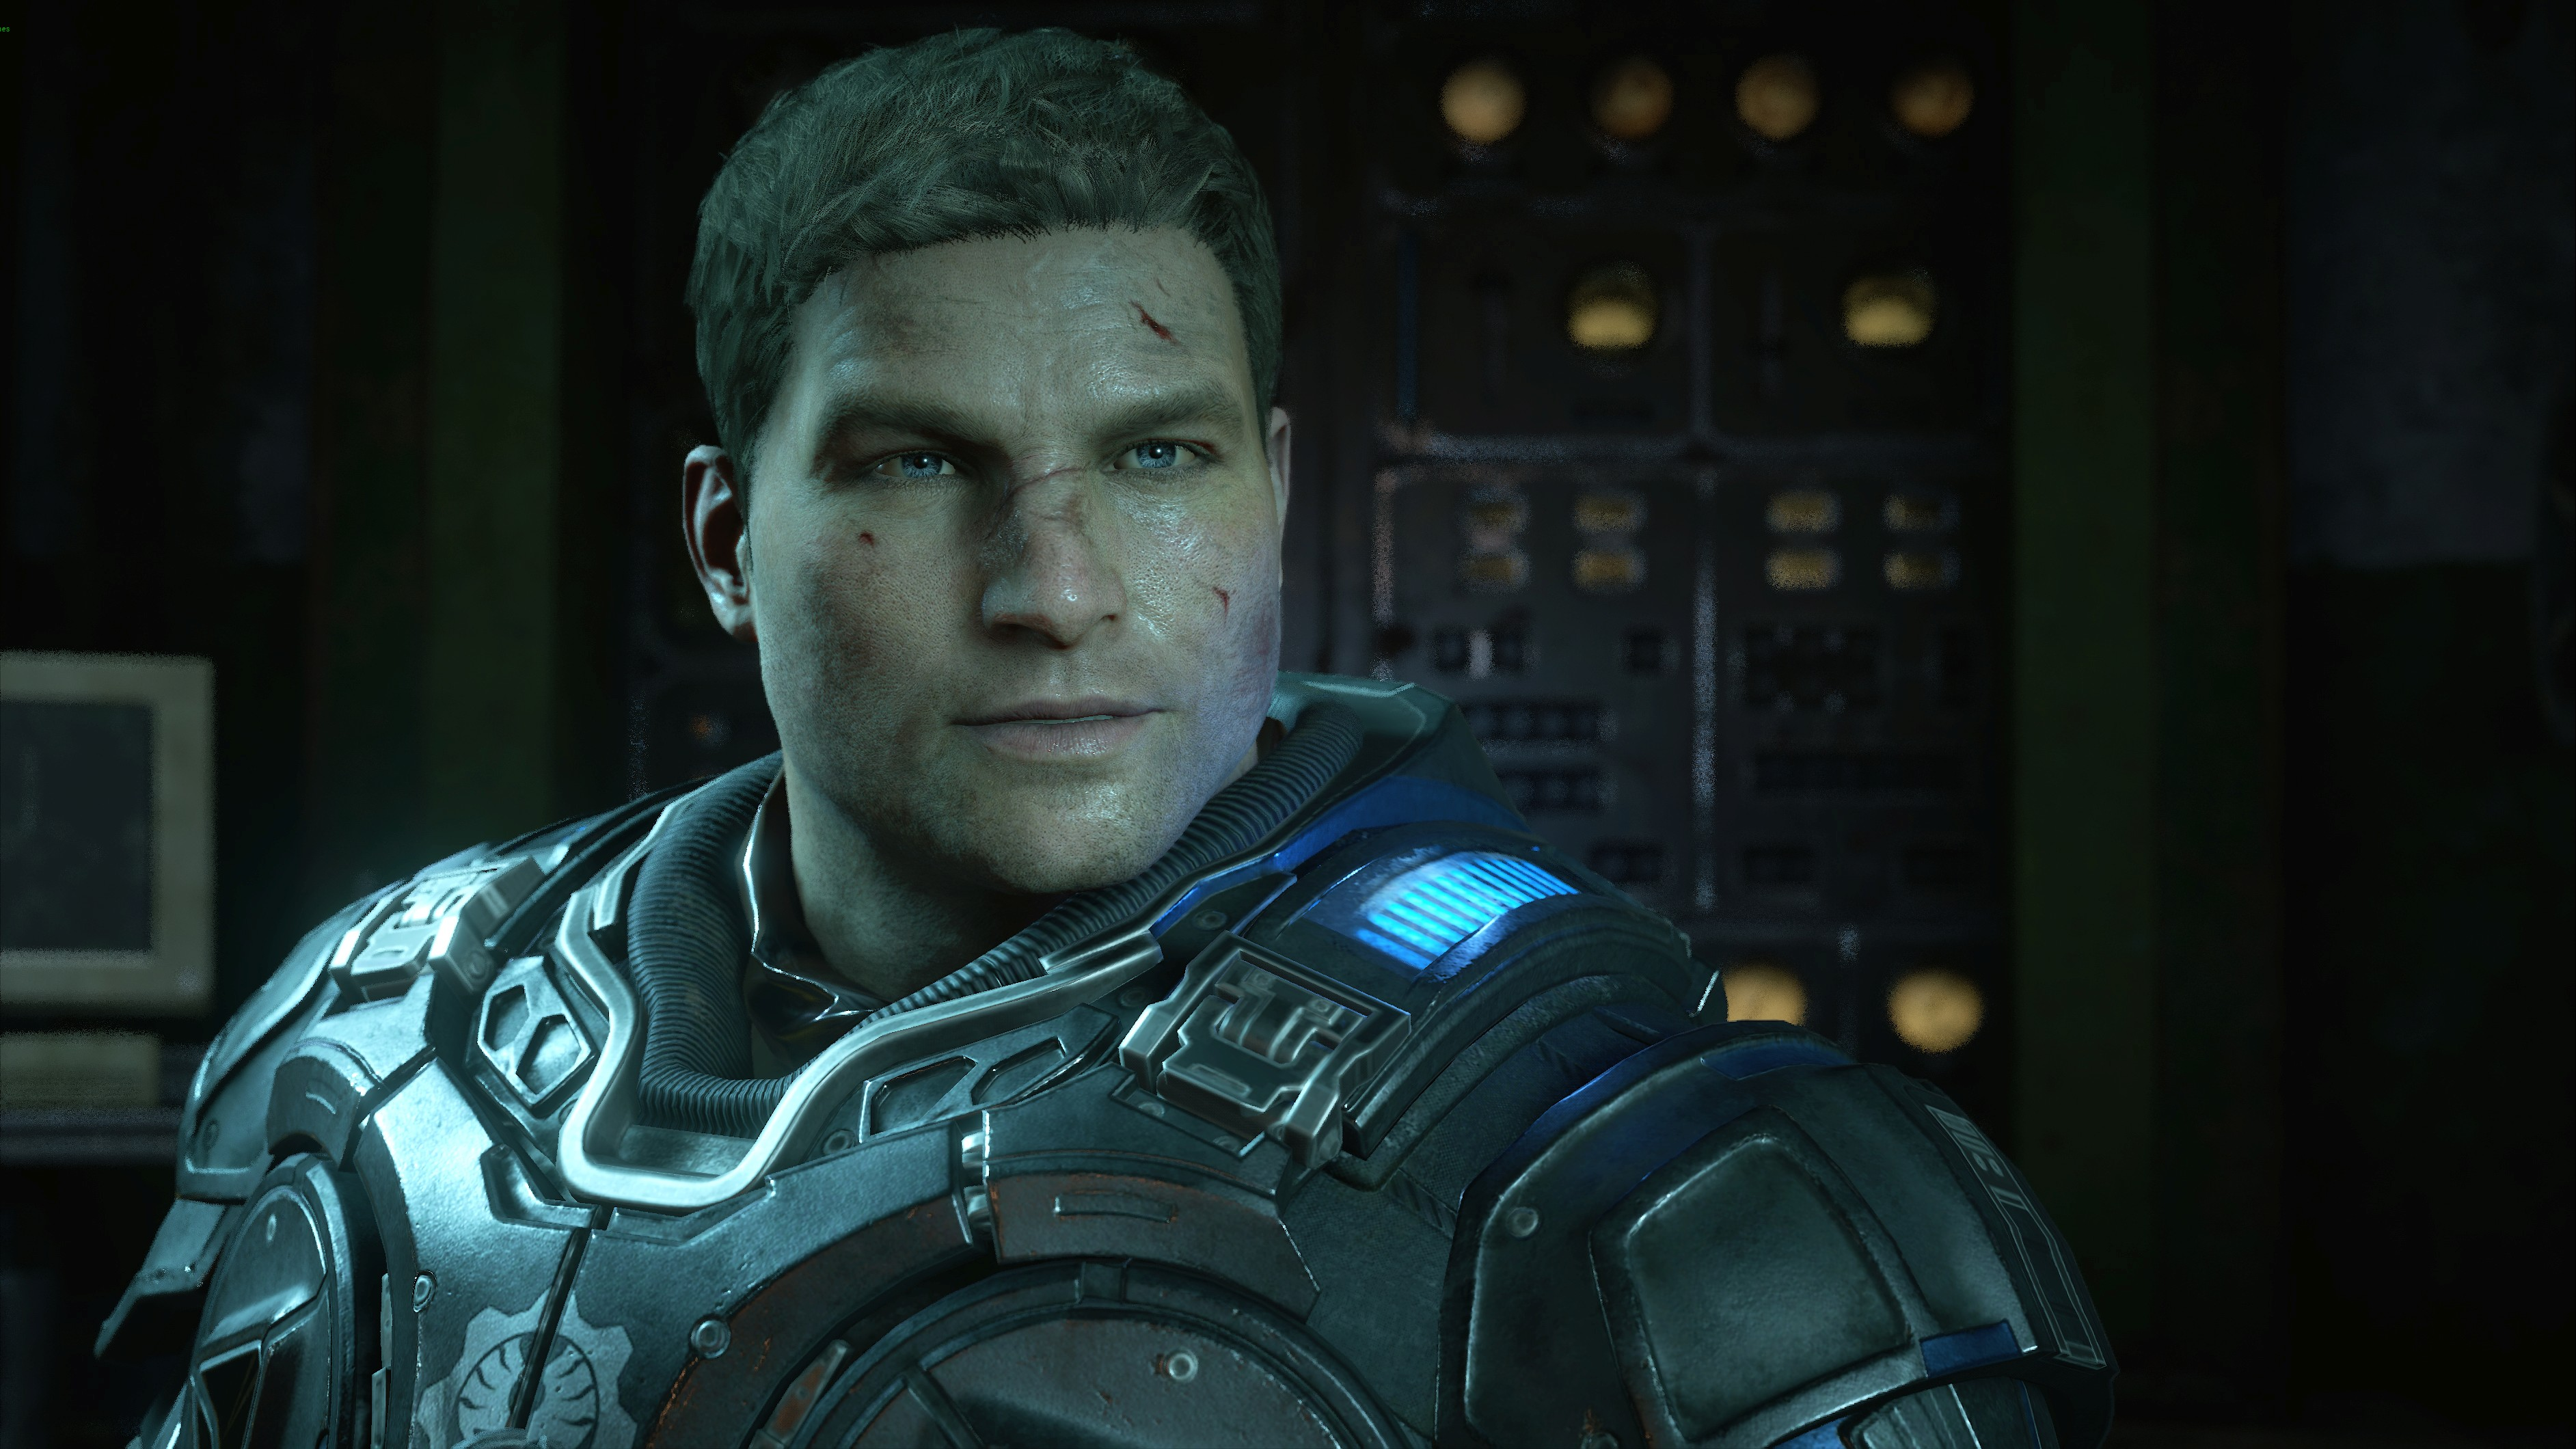 Gears of War 4 co-op modes feature Xbox One and PC cross-play